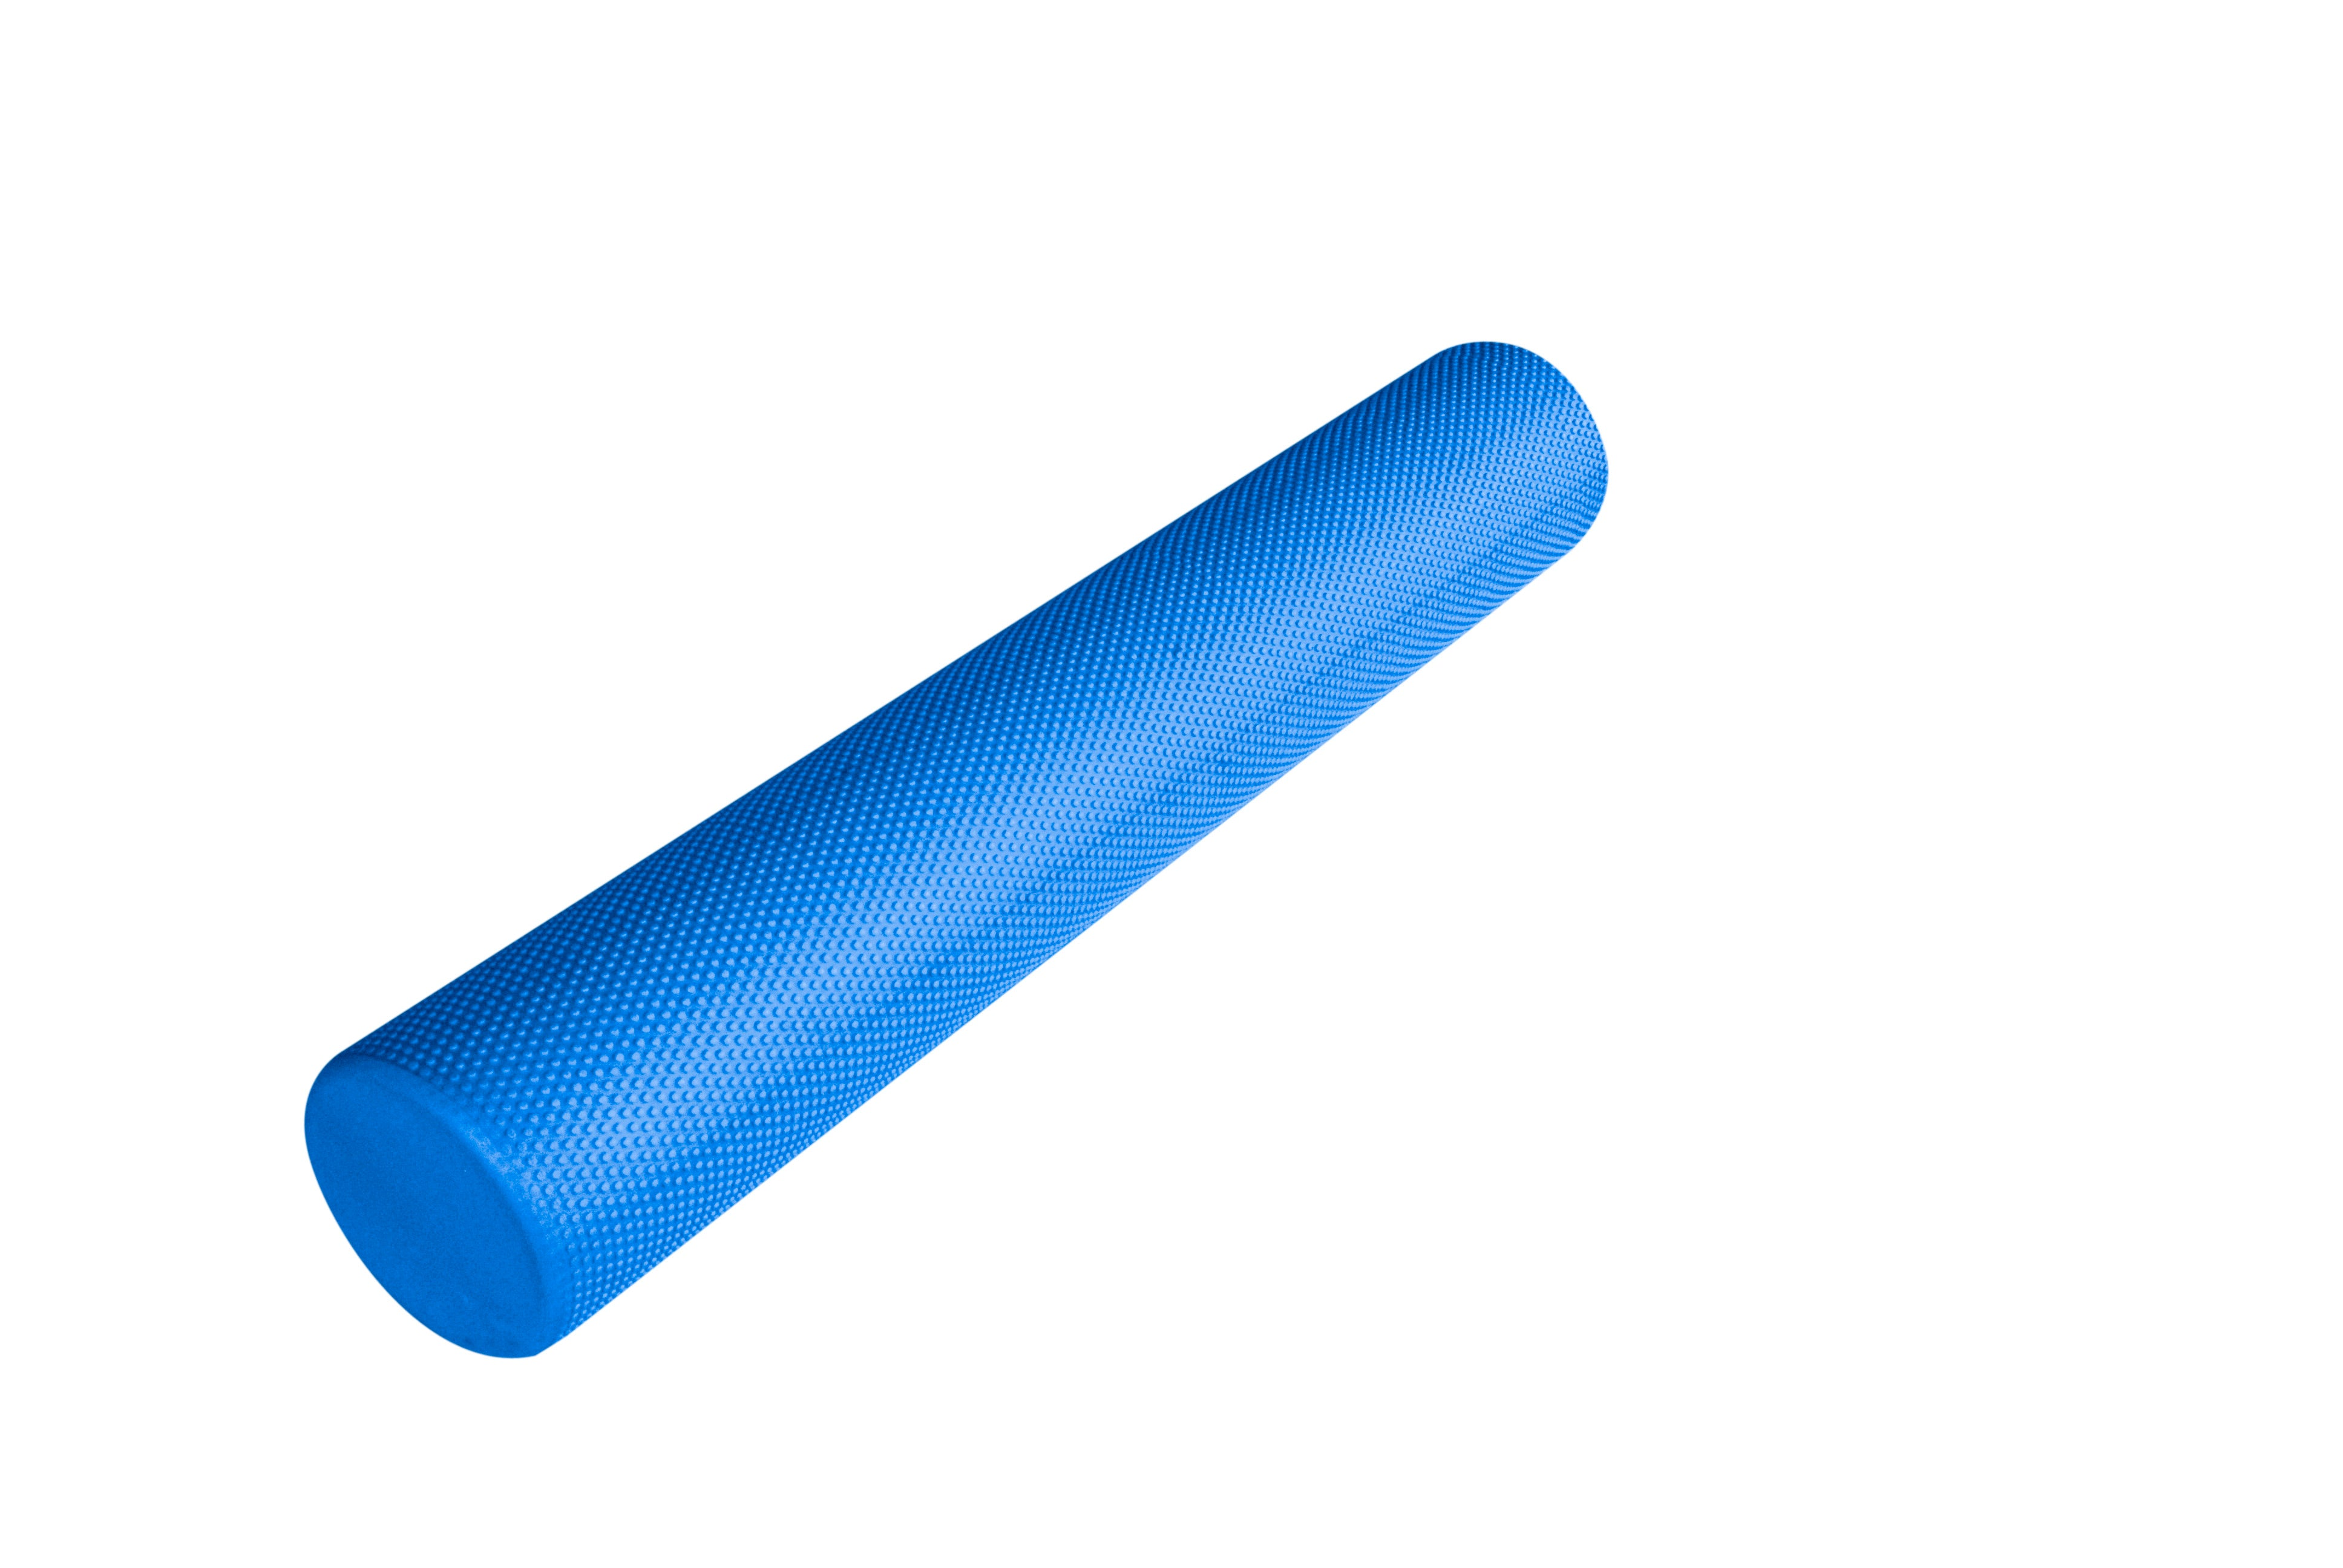 ARROW Eva Foam Massage Roller 15 X 90cm